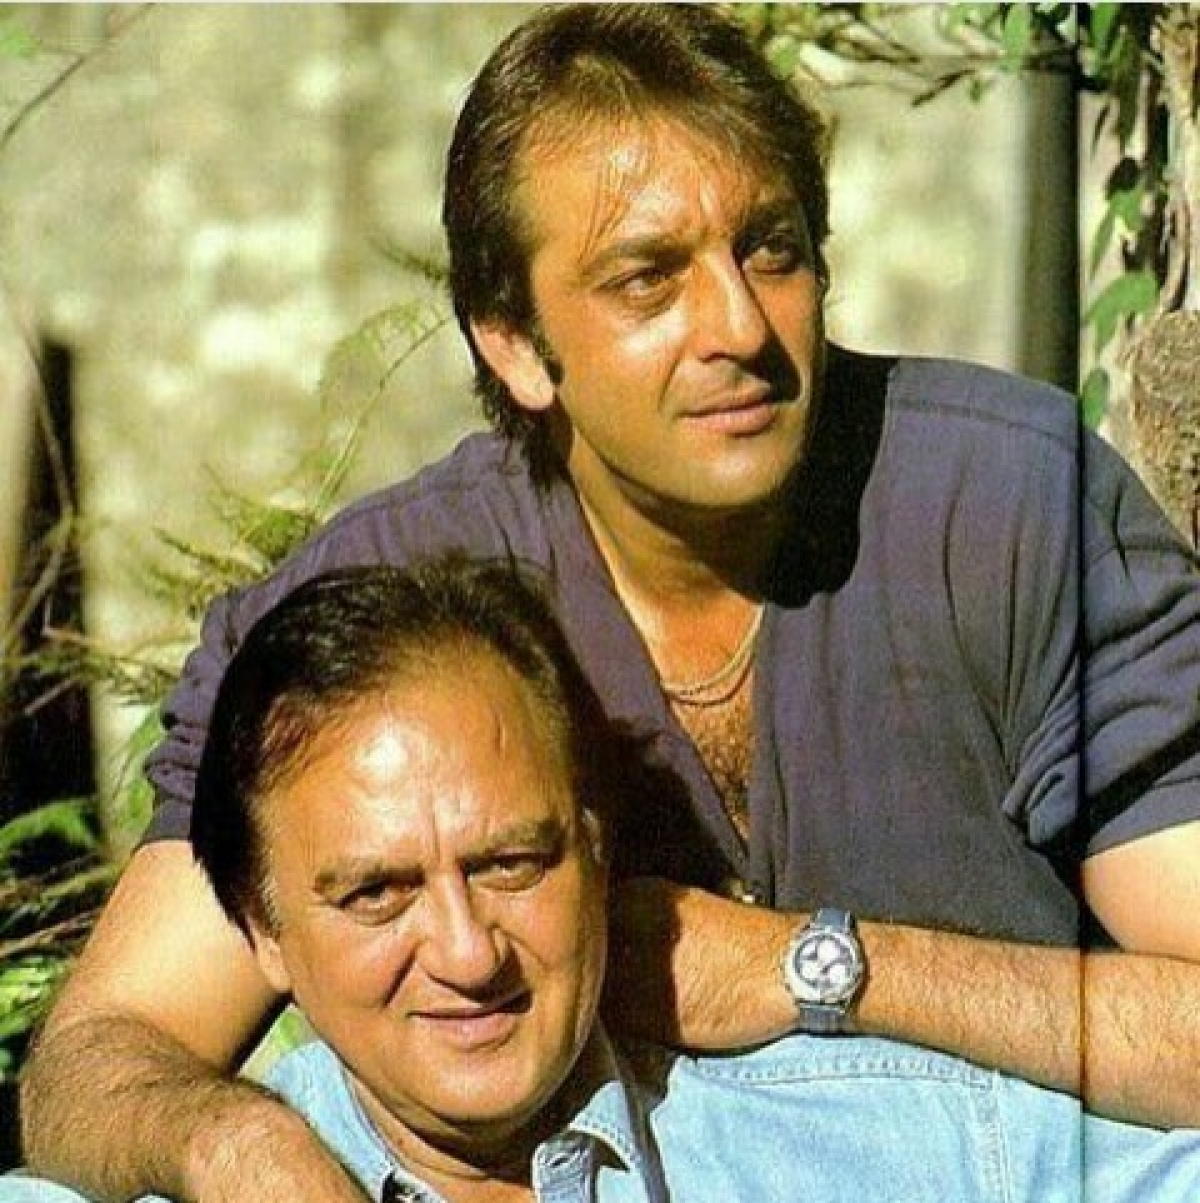 Sunil and Sanjay became close in later years.